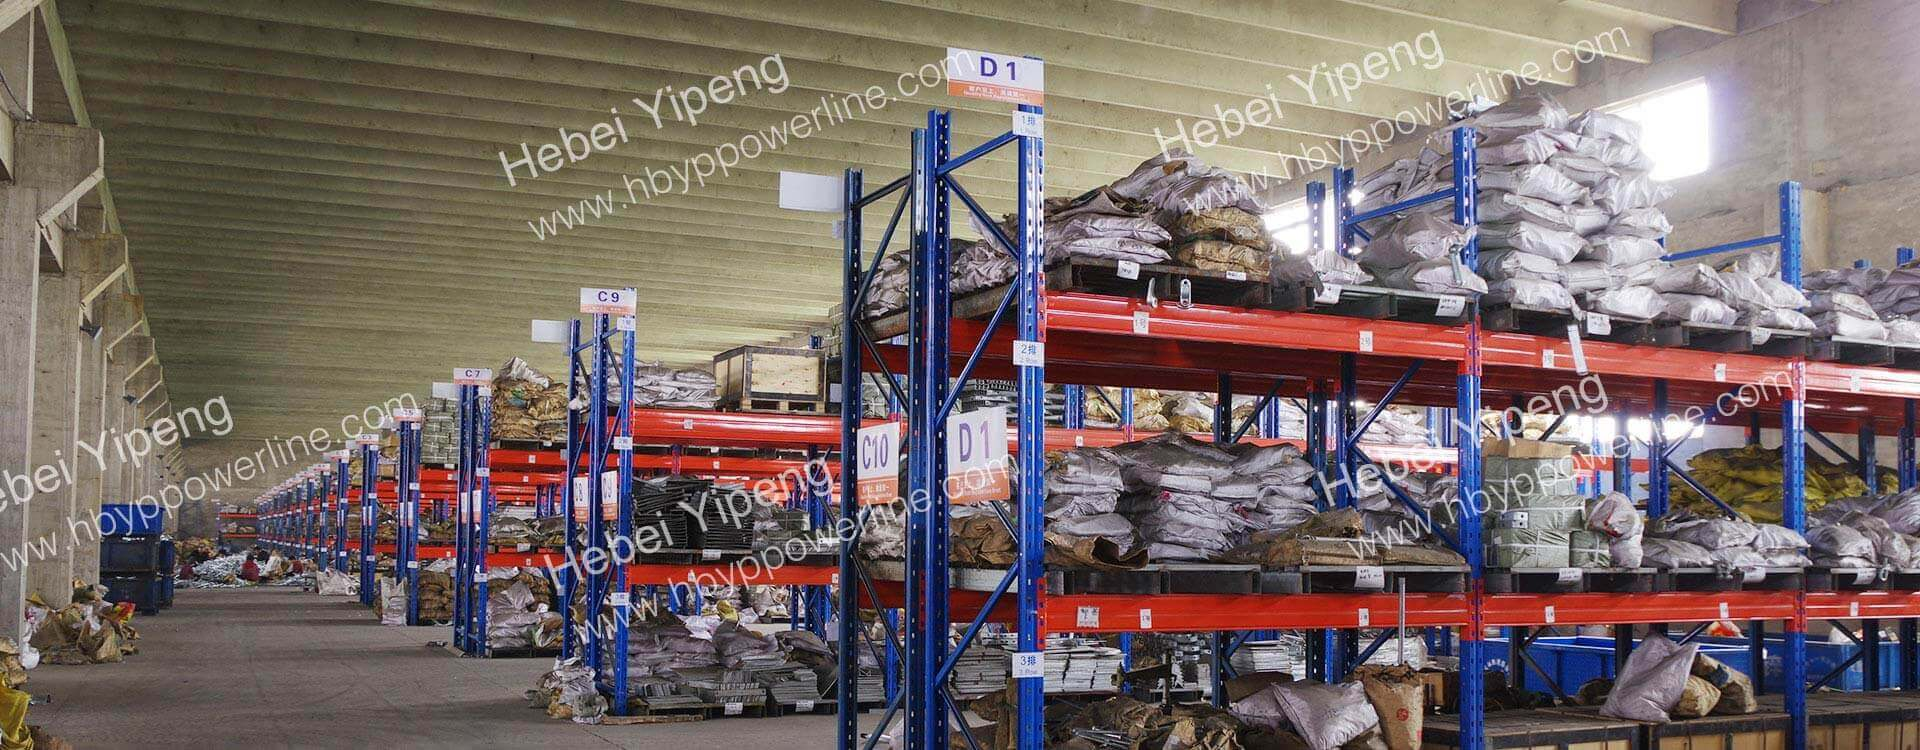 Lipeng Line Equipment Warehouse